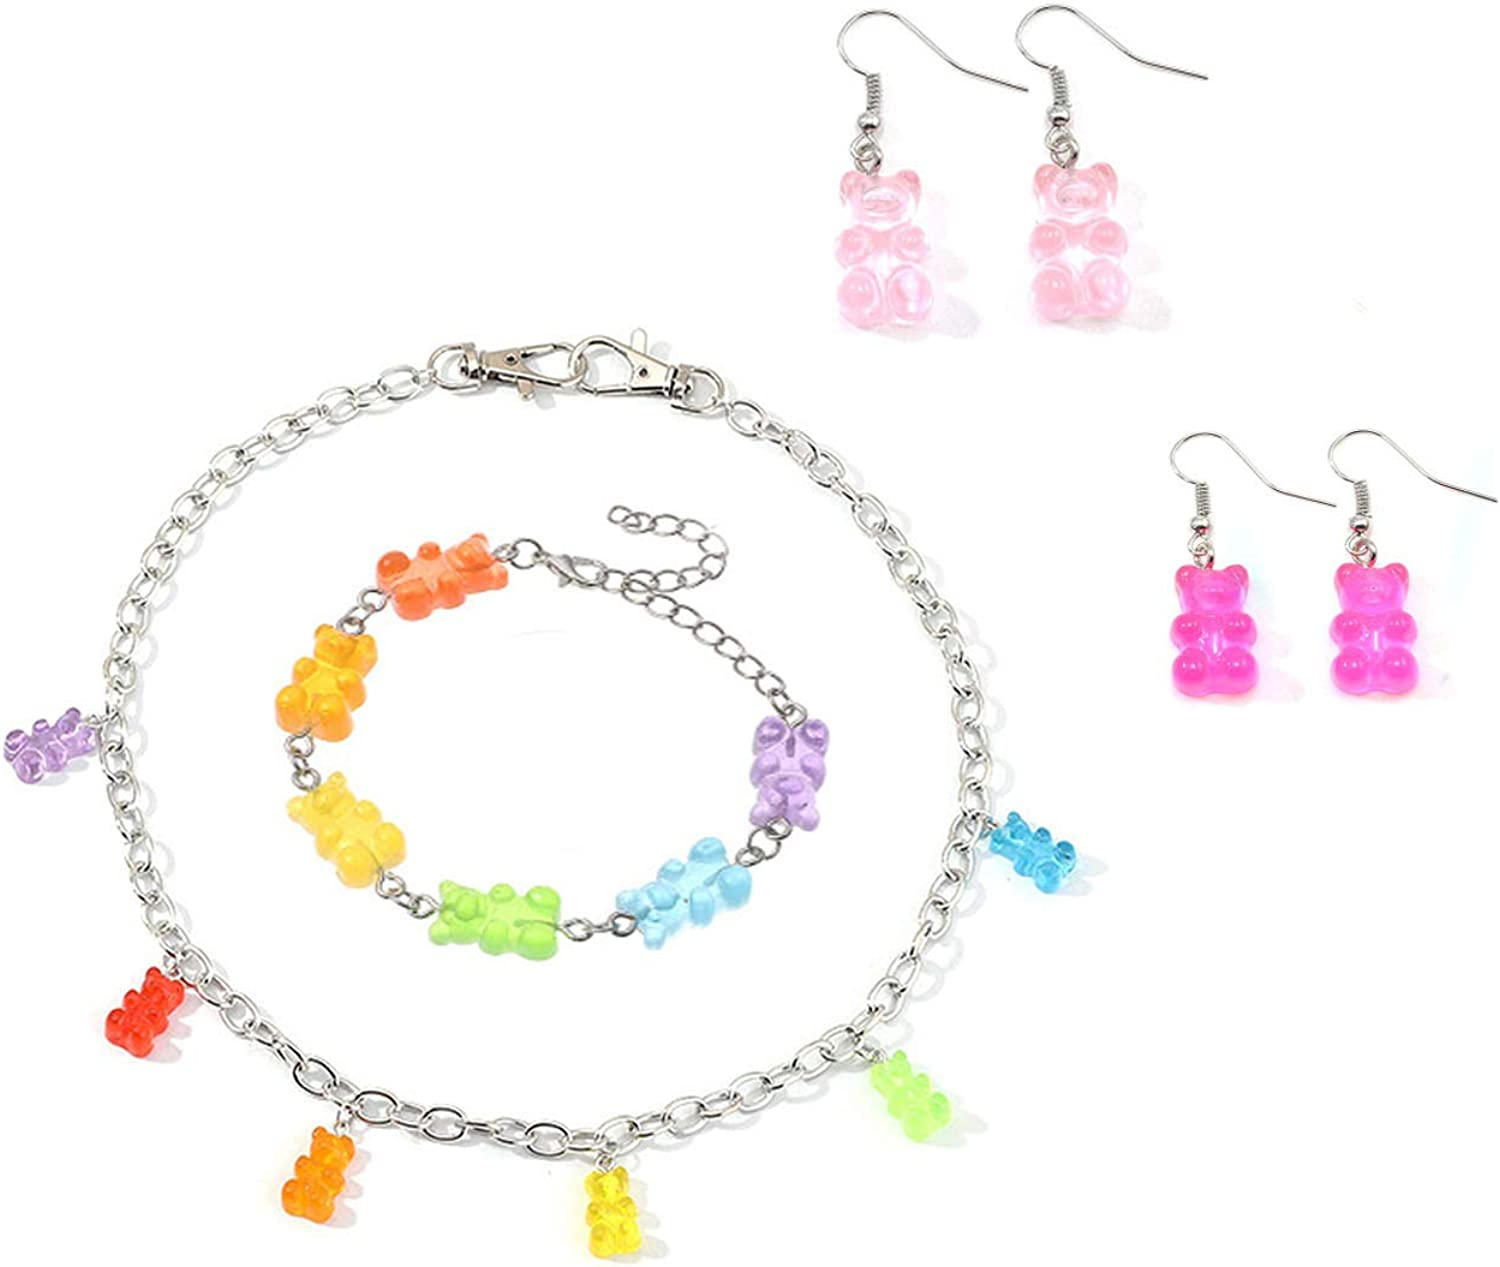 Gummy Bear Necklace Bracelet Set Colorful Multicolor Transparent Resin Bear Earring Cartoon Cute Candy Crazy Aesthetic Pendant Necklace for Girls Women Jewelry